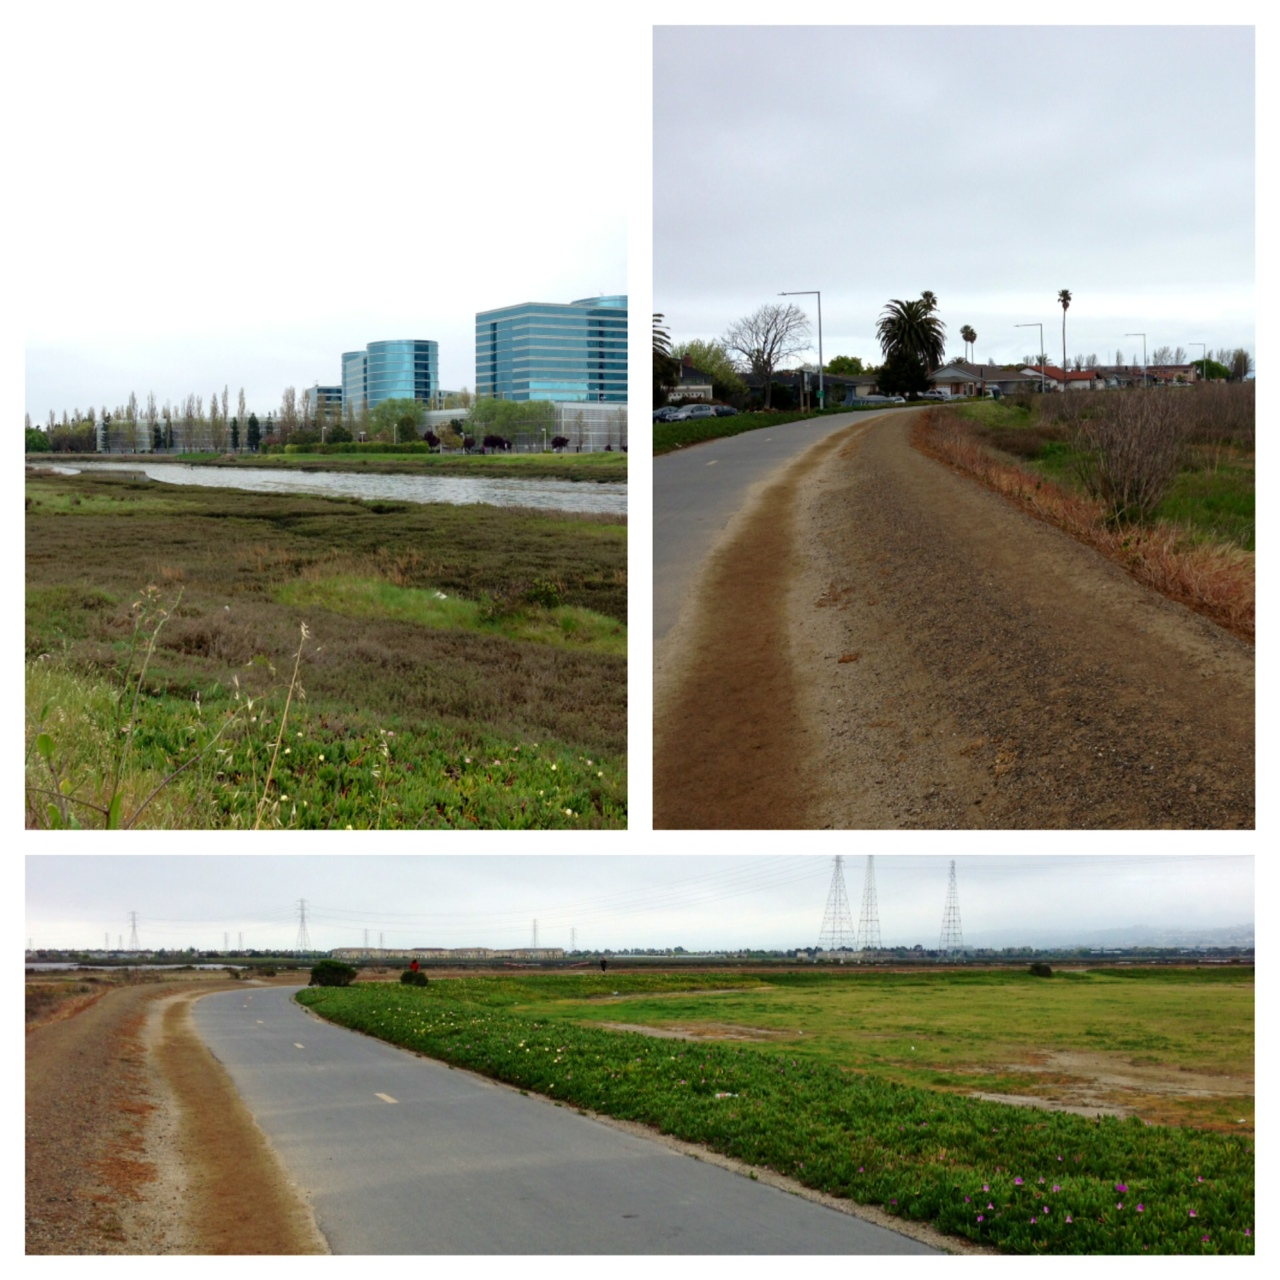 View of the marshes in Foster City